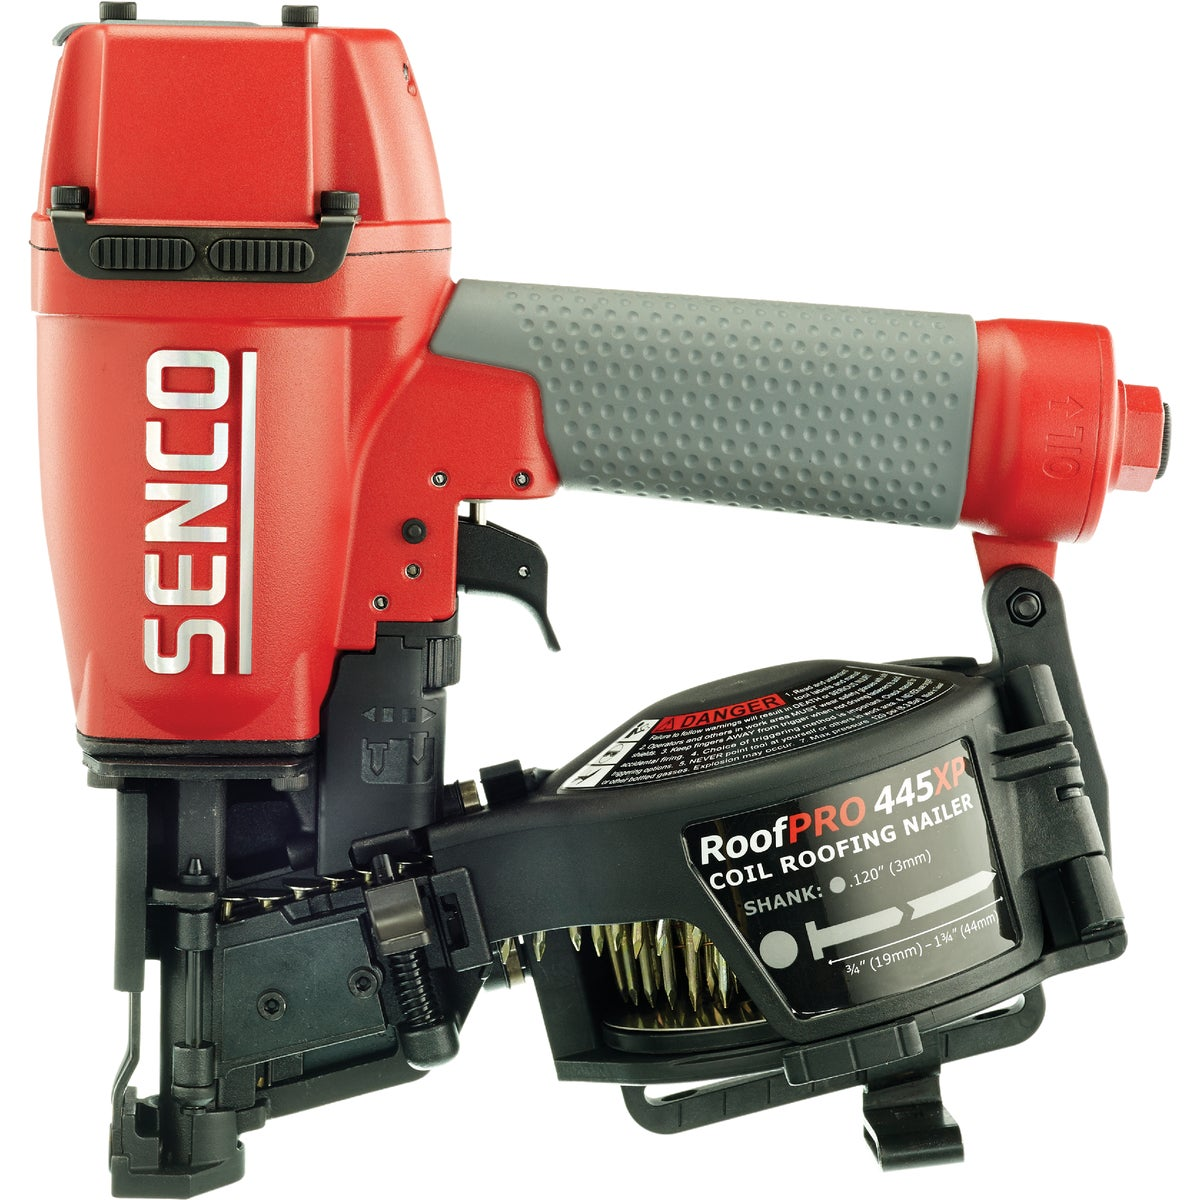 455XP COIL ROOF NAILER - 3D0101N by Senco Brands